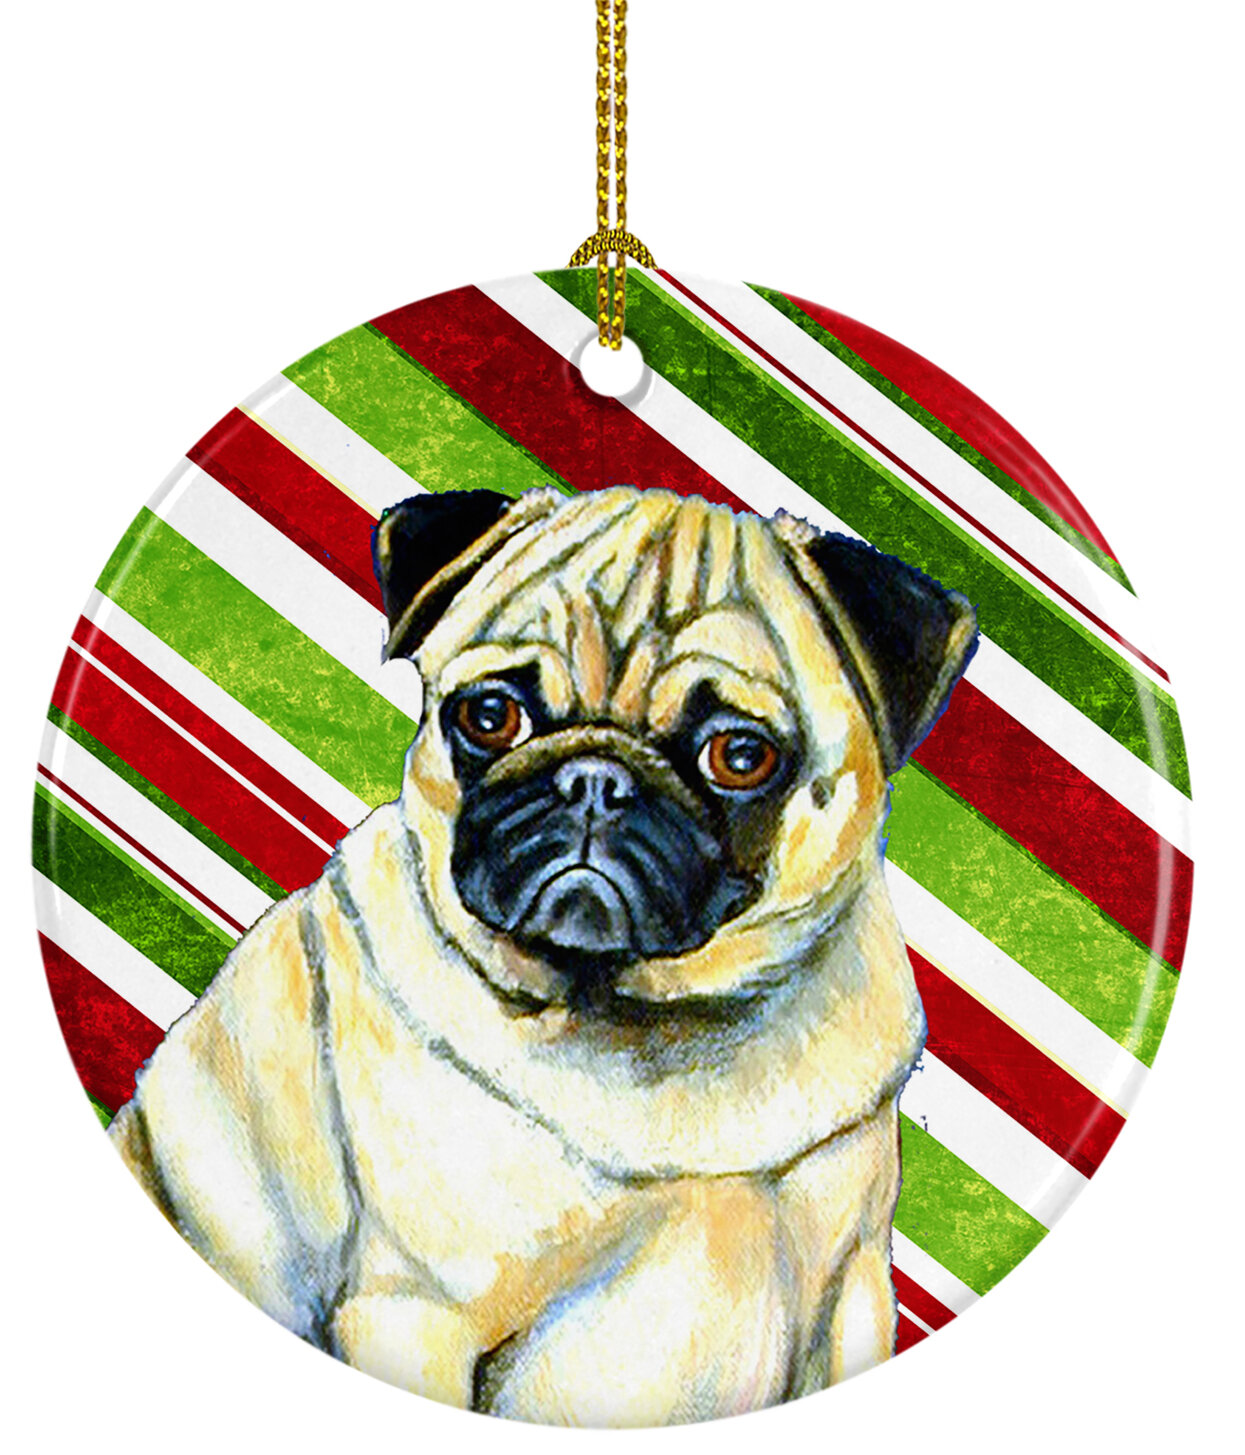 The Holiday Aisle Pug Holiday Christmas Ceramic Hanging Figurine Ornament Wayfair